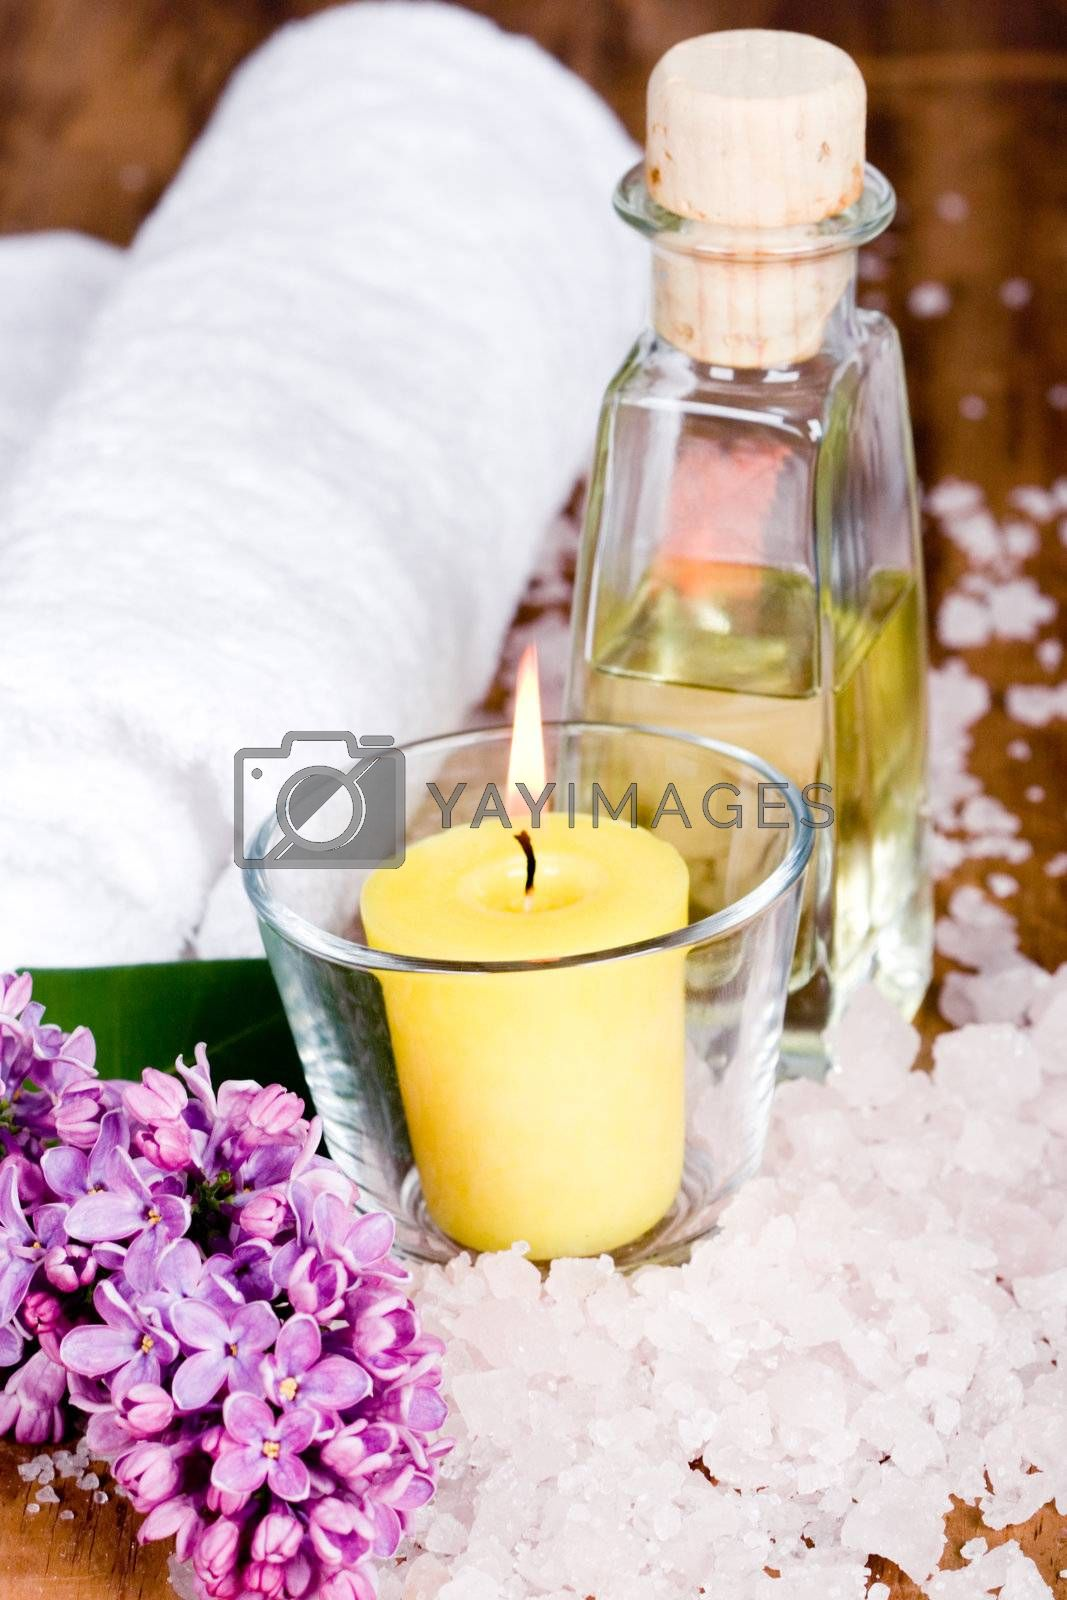 bath and spa items (towel, salt, oil, lilac, candle) on wooden background